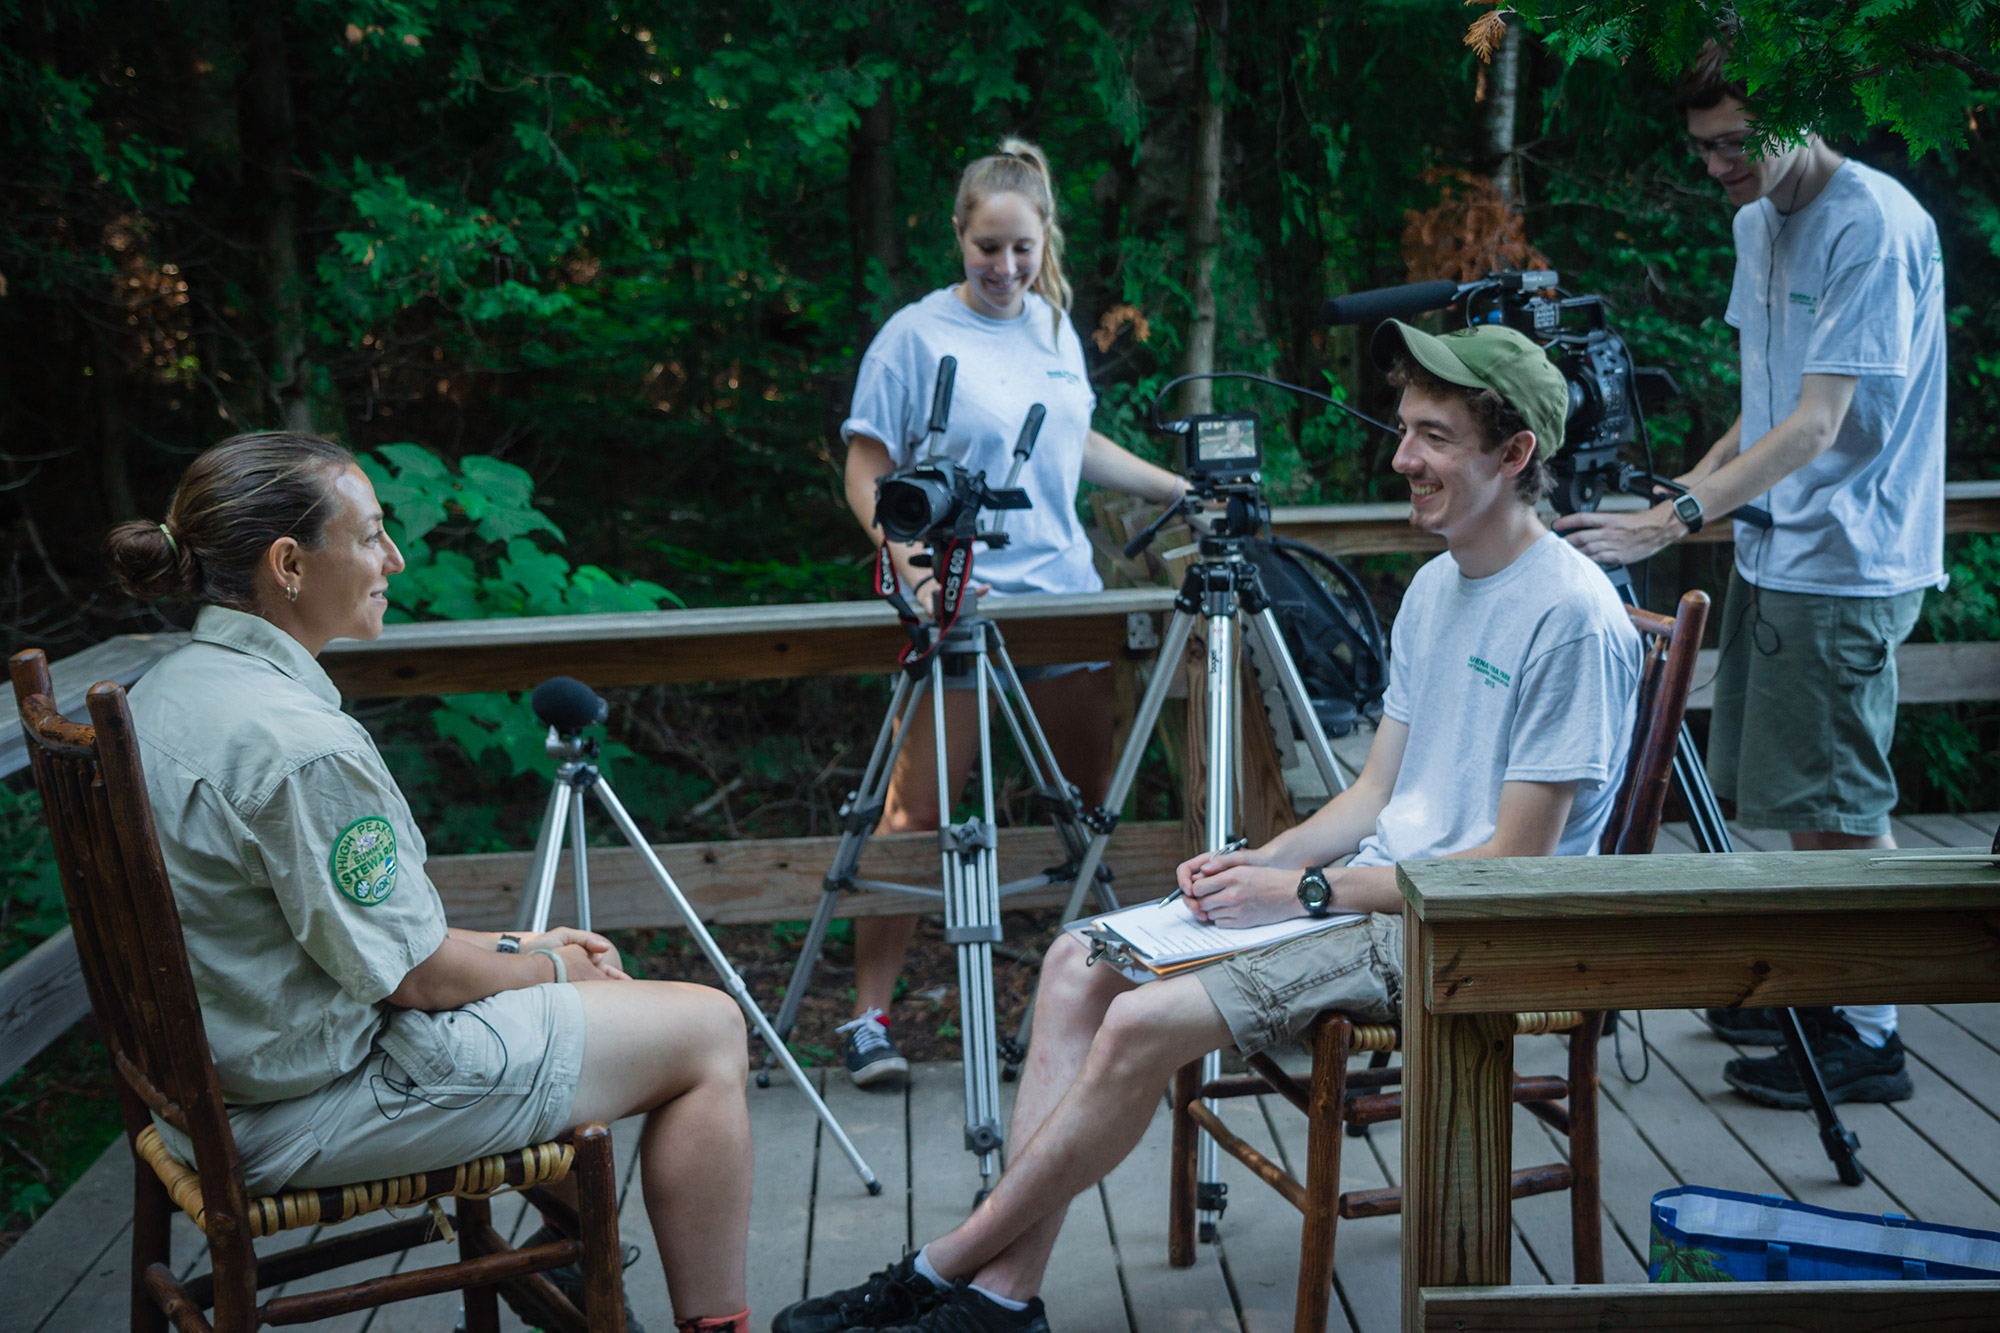 Blake interviewing one of the film's subjects. | Courtesy: Blake Cortright